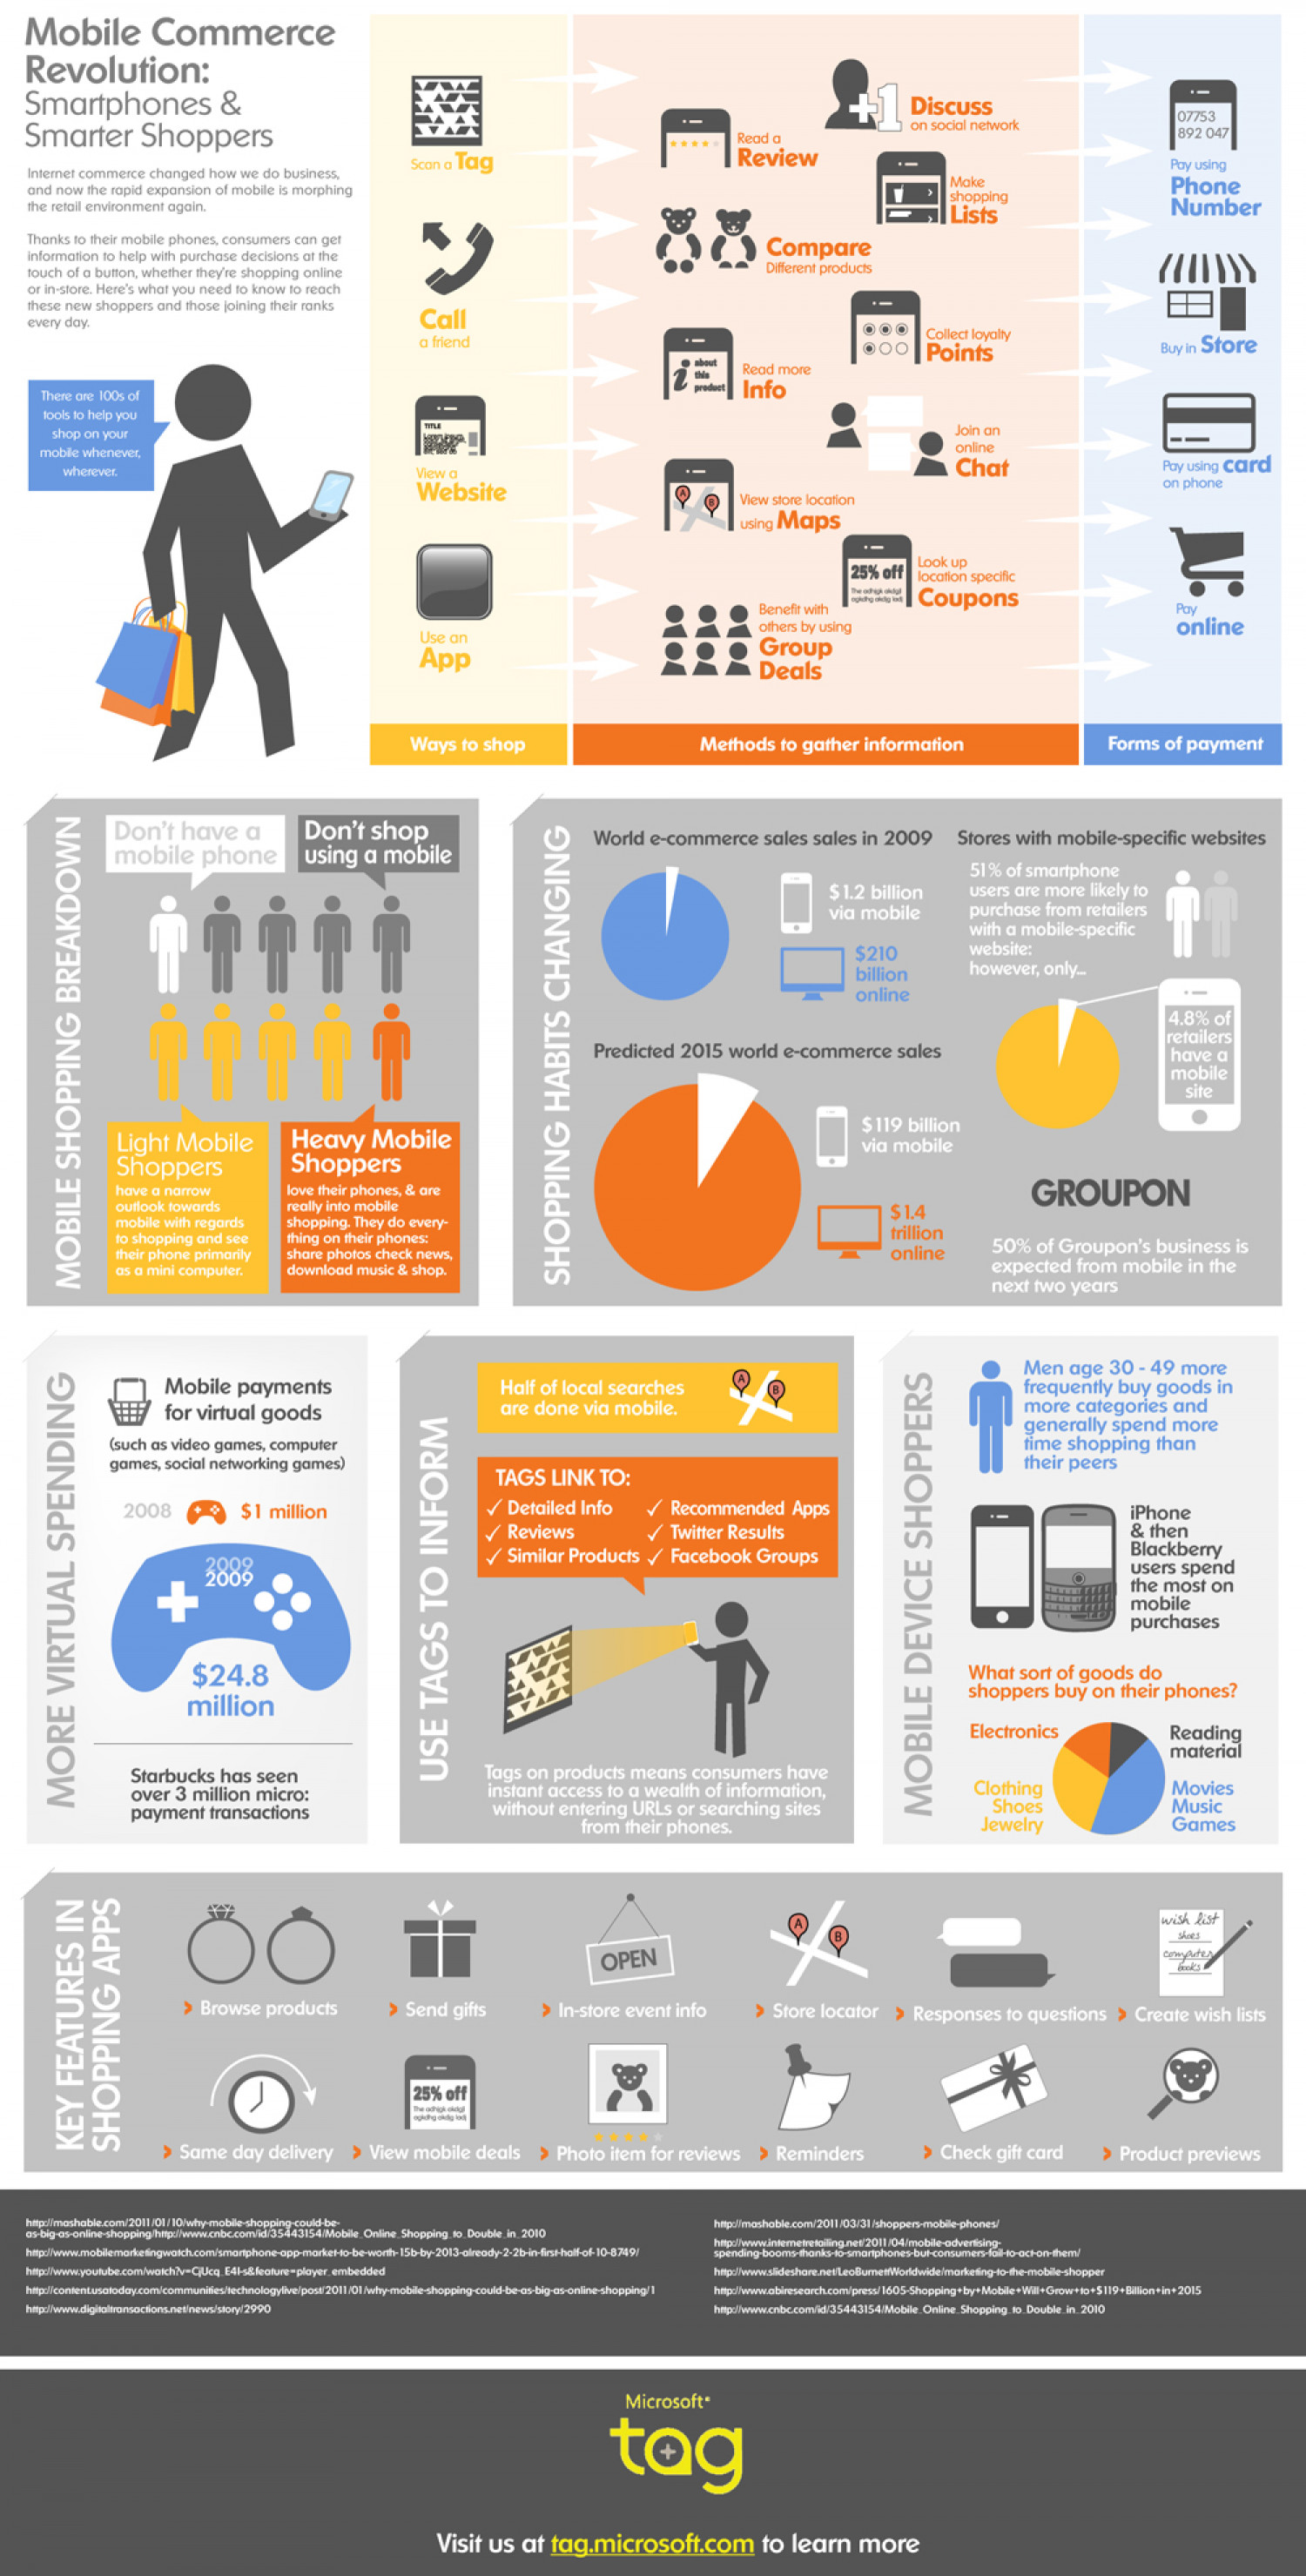 Mobile Commerce Revolution  Infographic